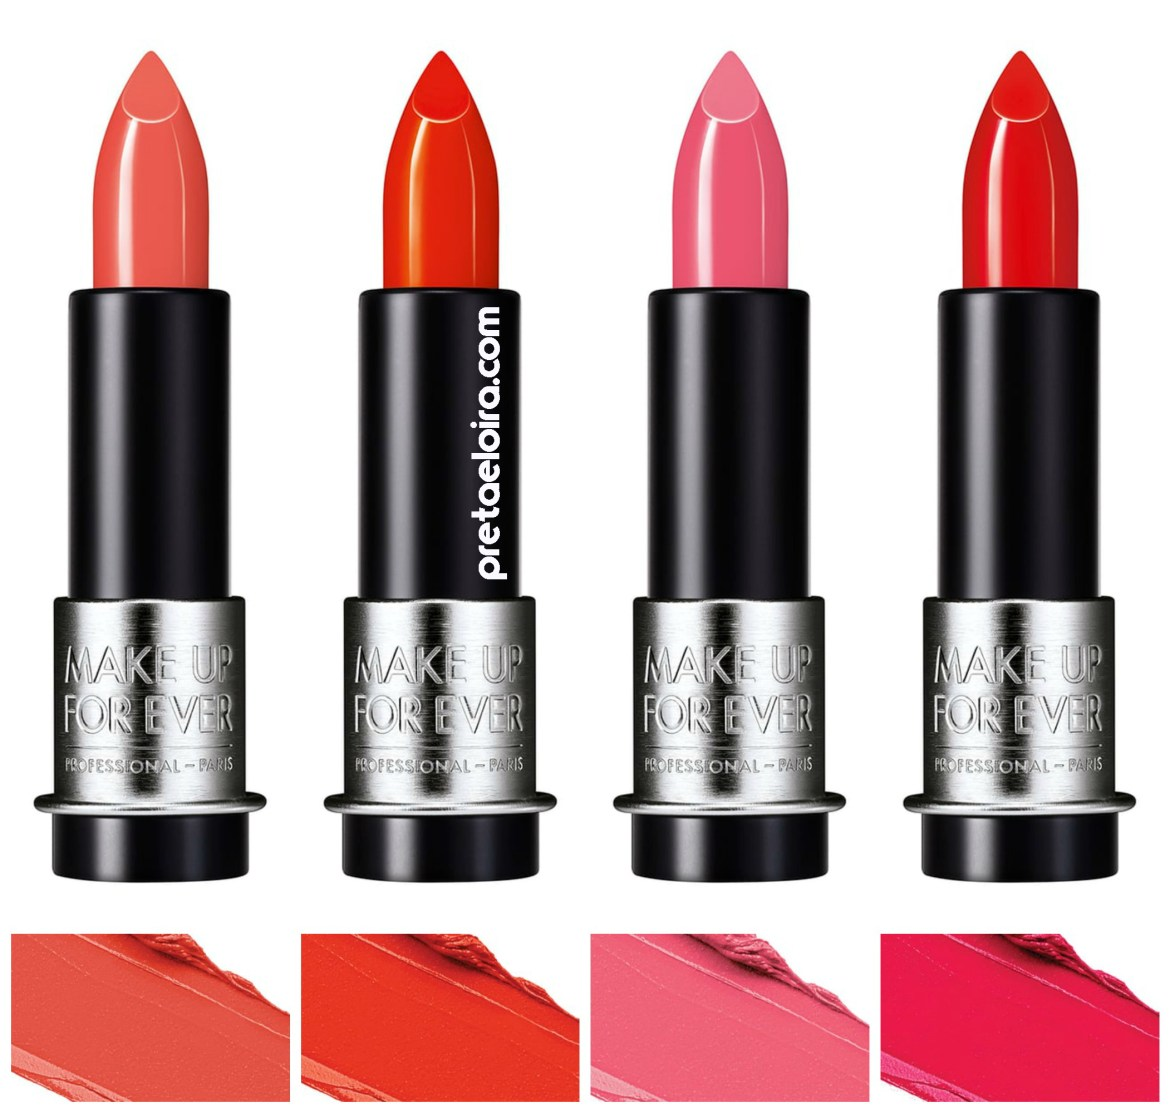 Make-Up-Ever-Artist-Rouge-Lipstick-pretaeloira-5 copia